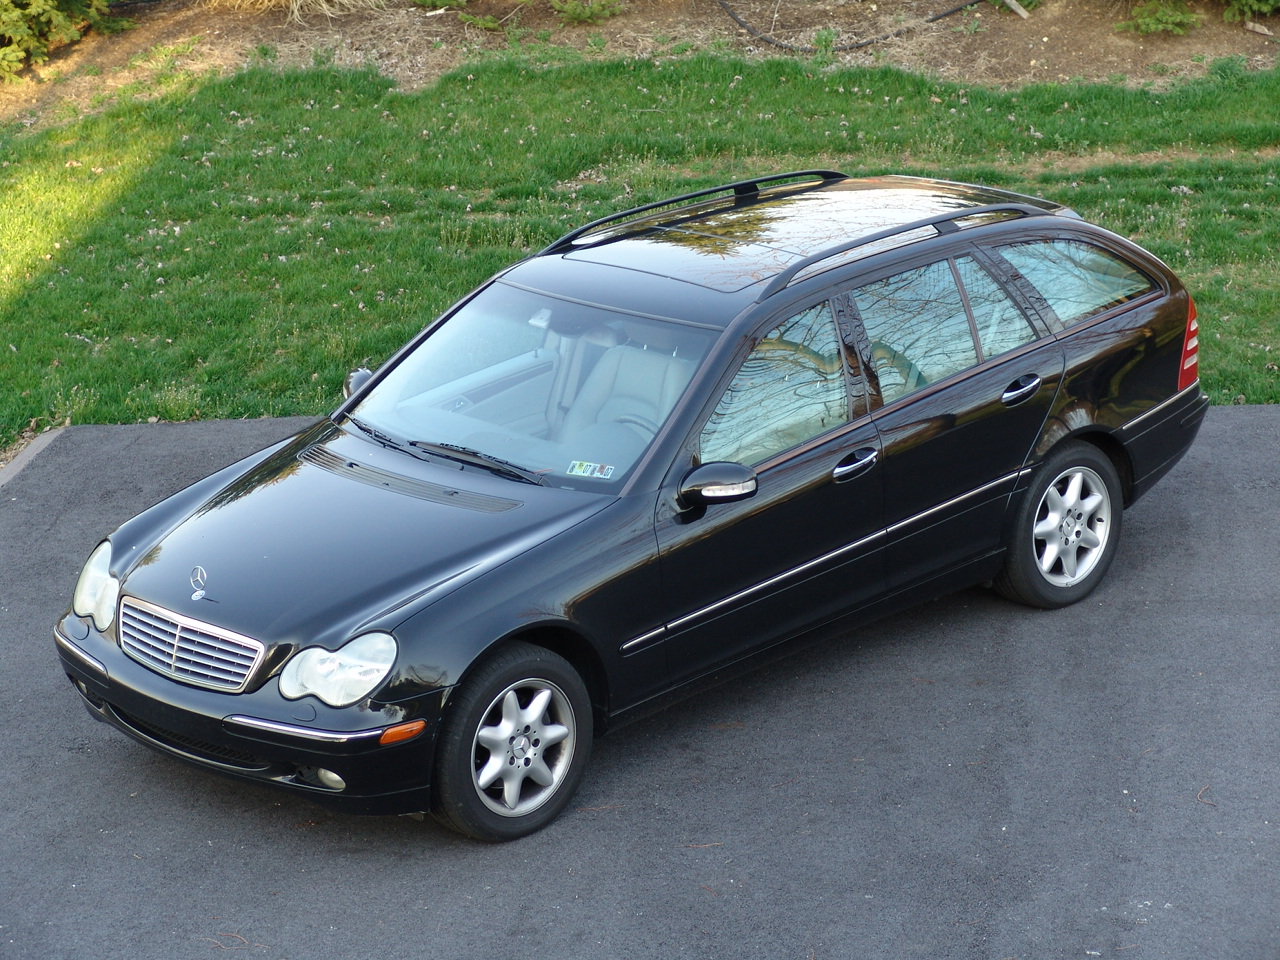 2002 c320 wagon for sale mercedes forum mercedes benz. Black Bedroom Furniture Sets. Home Design Ideas